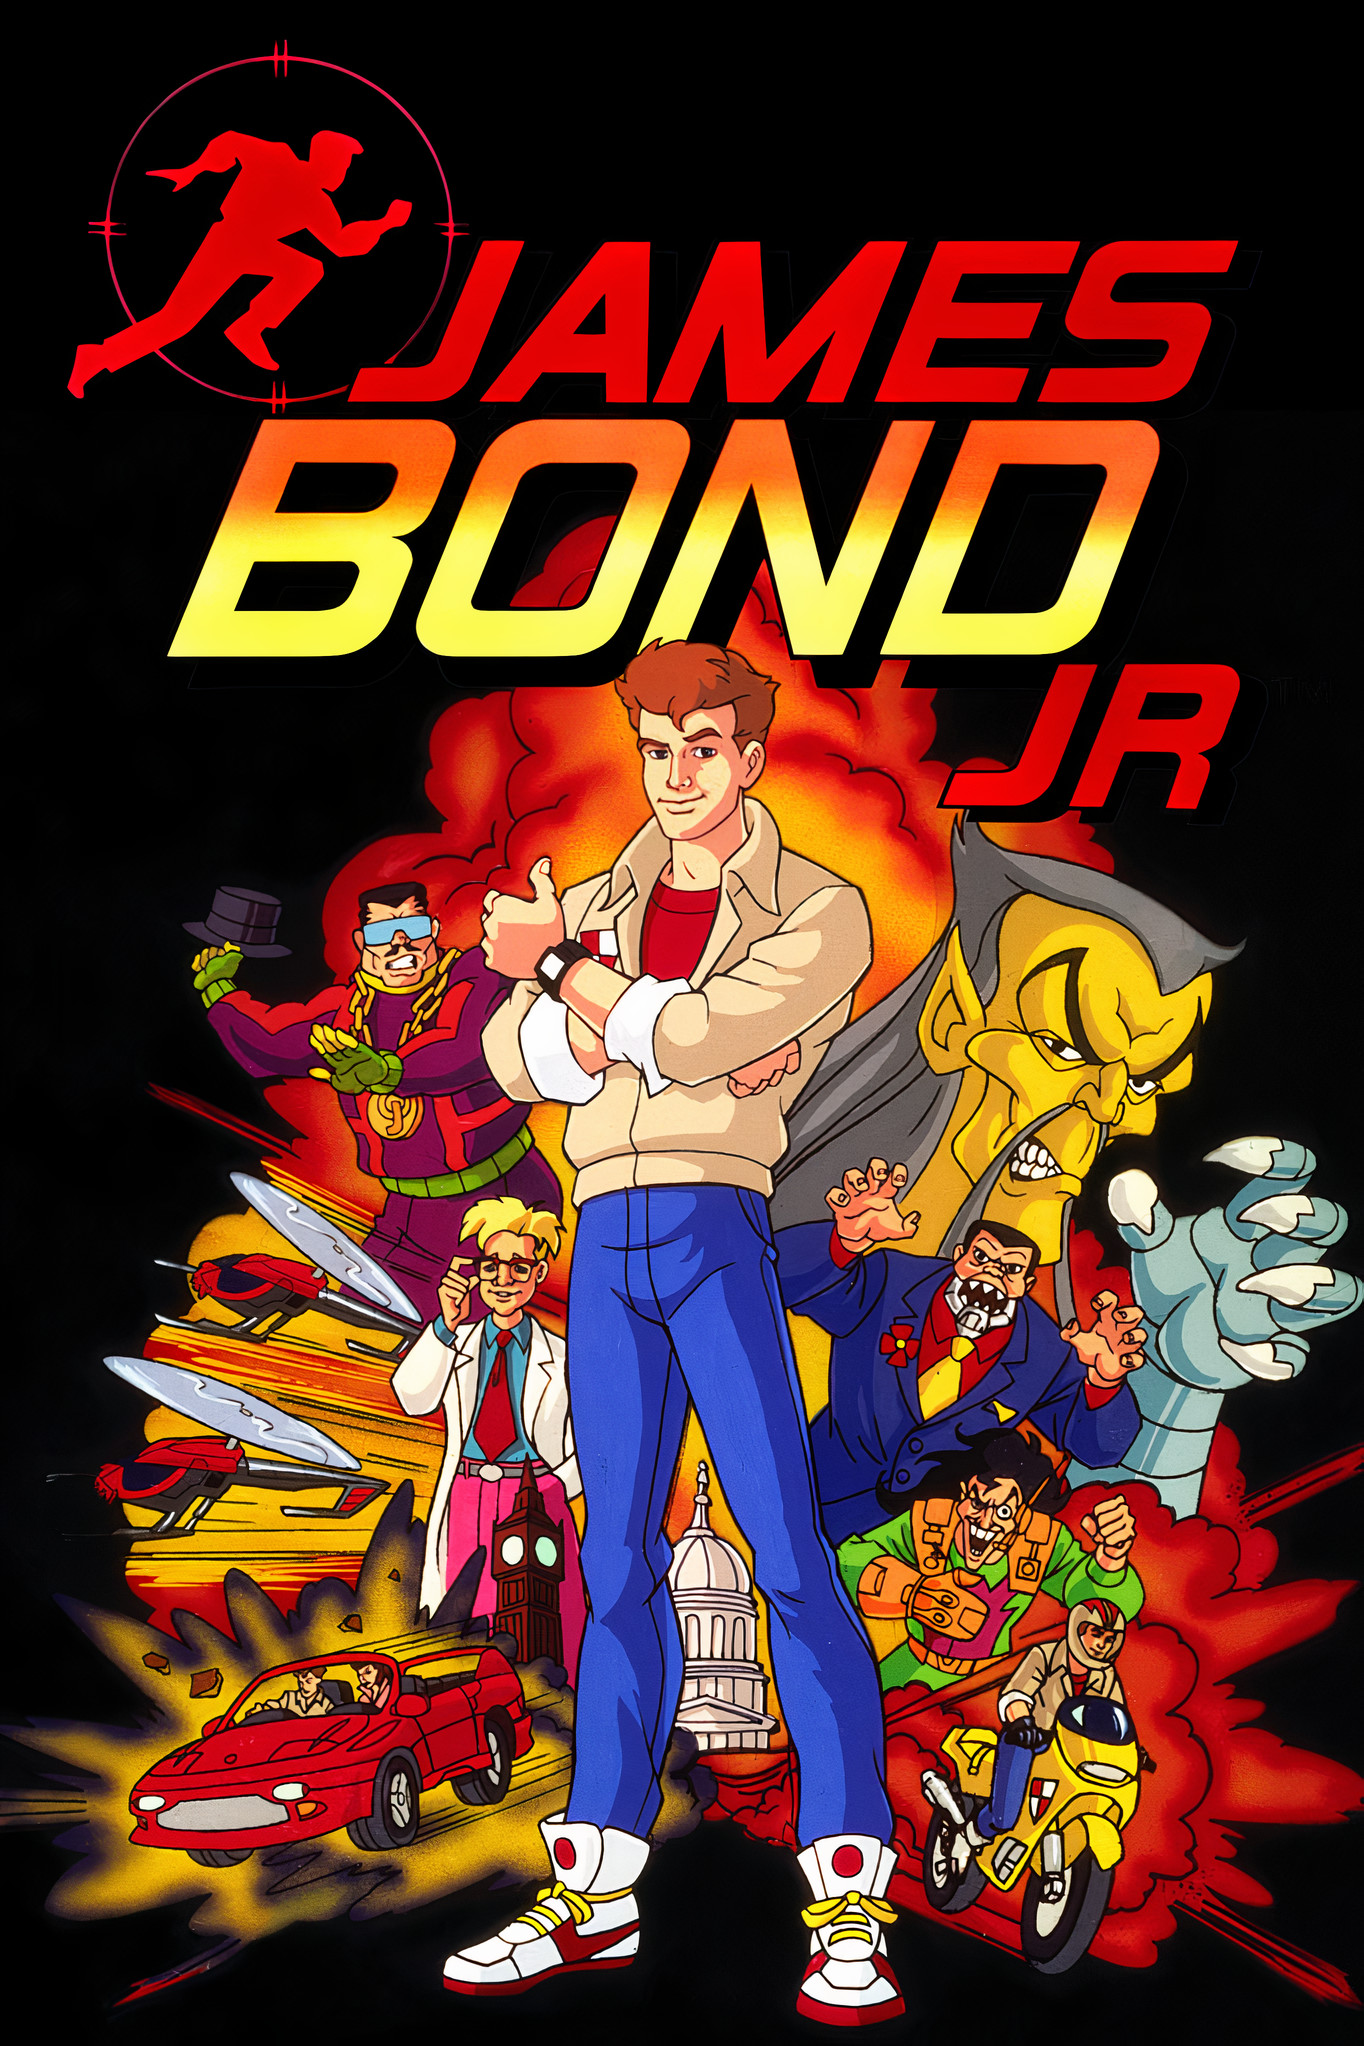 descargar james bond jr 1991 latino